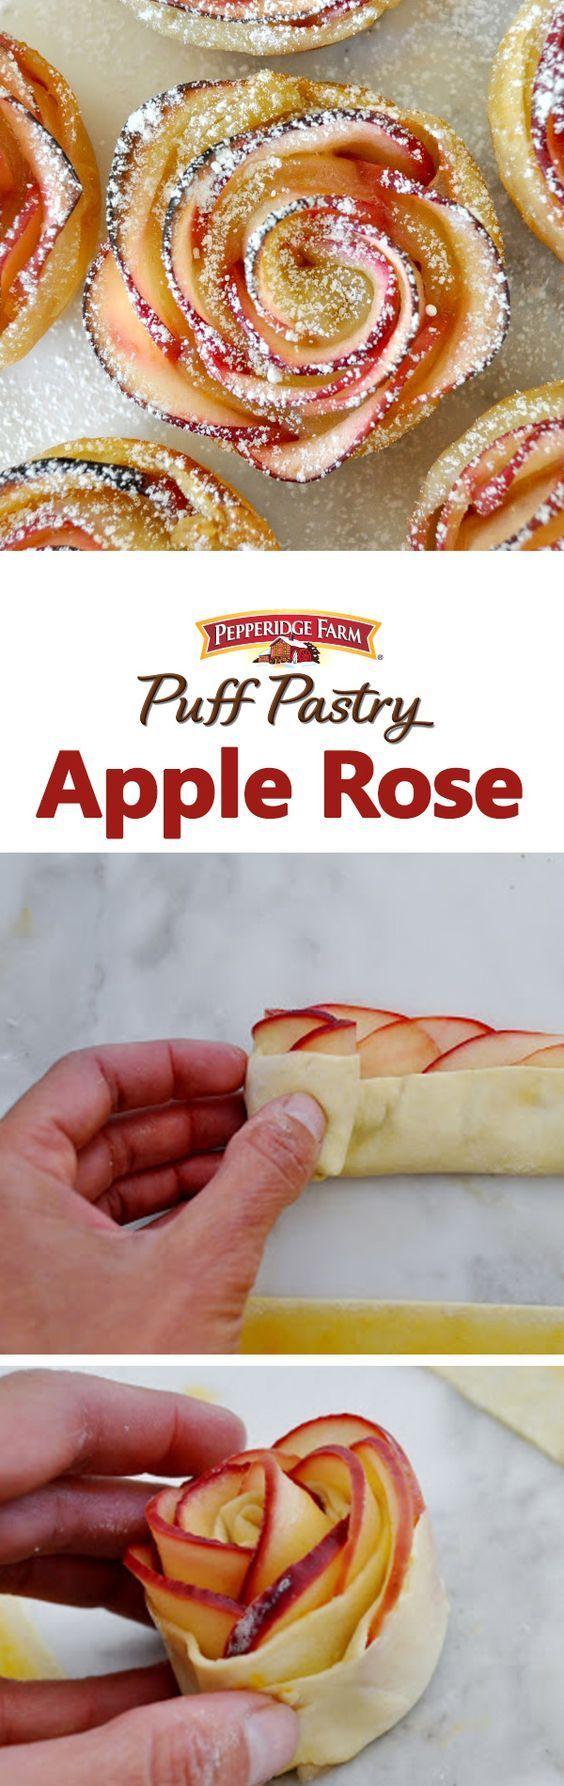 "Puff Pastry Apple Rose Recipe. ""You don't need to be a pastry chef to bake this deliciously tempting rose-shaped dessert. It tastes just like apple pie. And it looks a lot like a beautiful red rose. Made with naturally sweet apple slices, sprinkled with cinnamon and rolled up in a perfectly crispy puff pastry."" - Manuela from Cooking With Manuela."